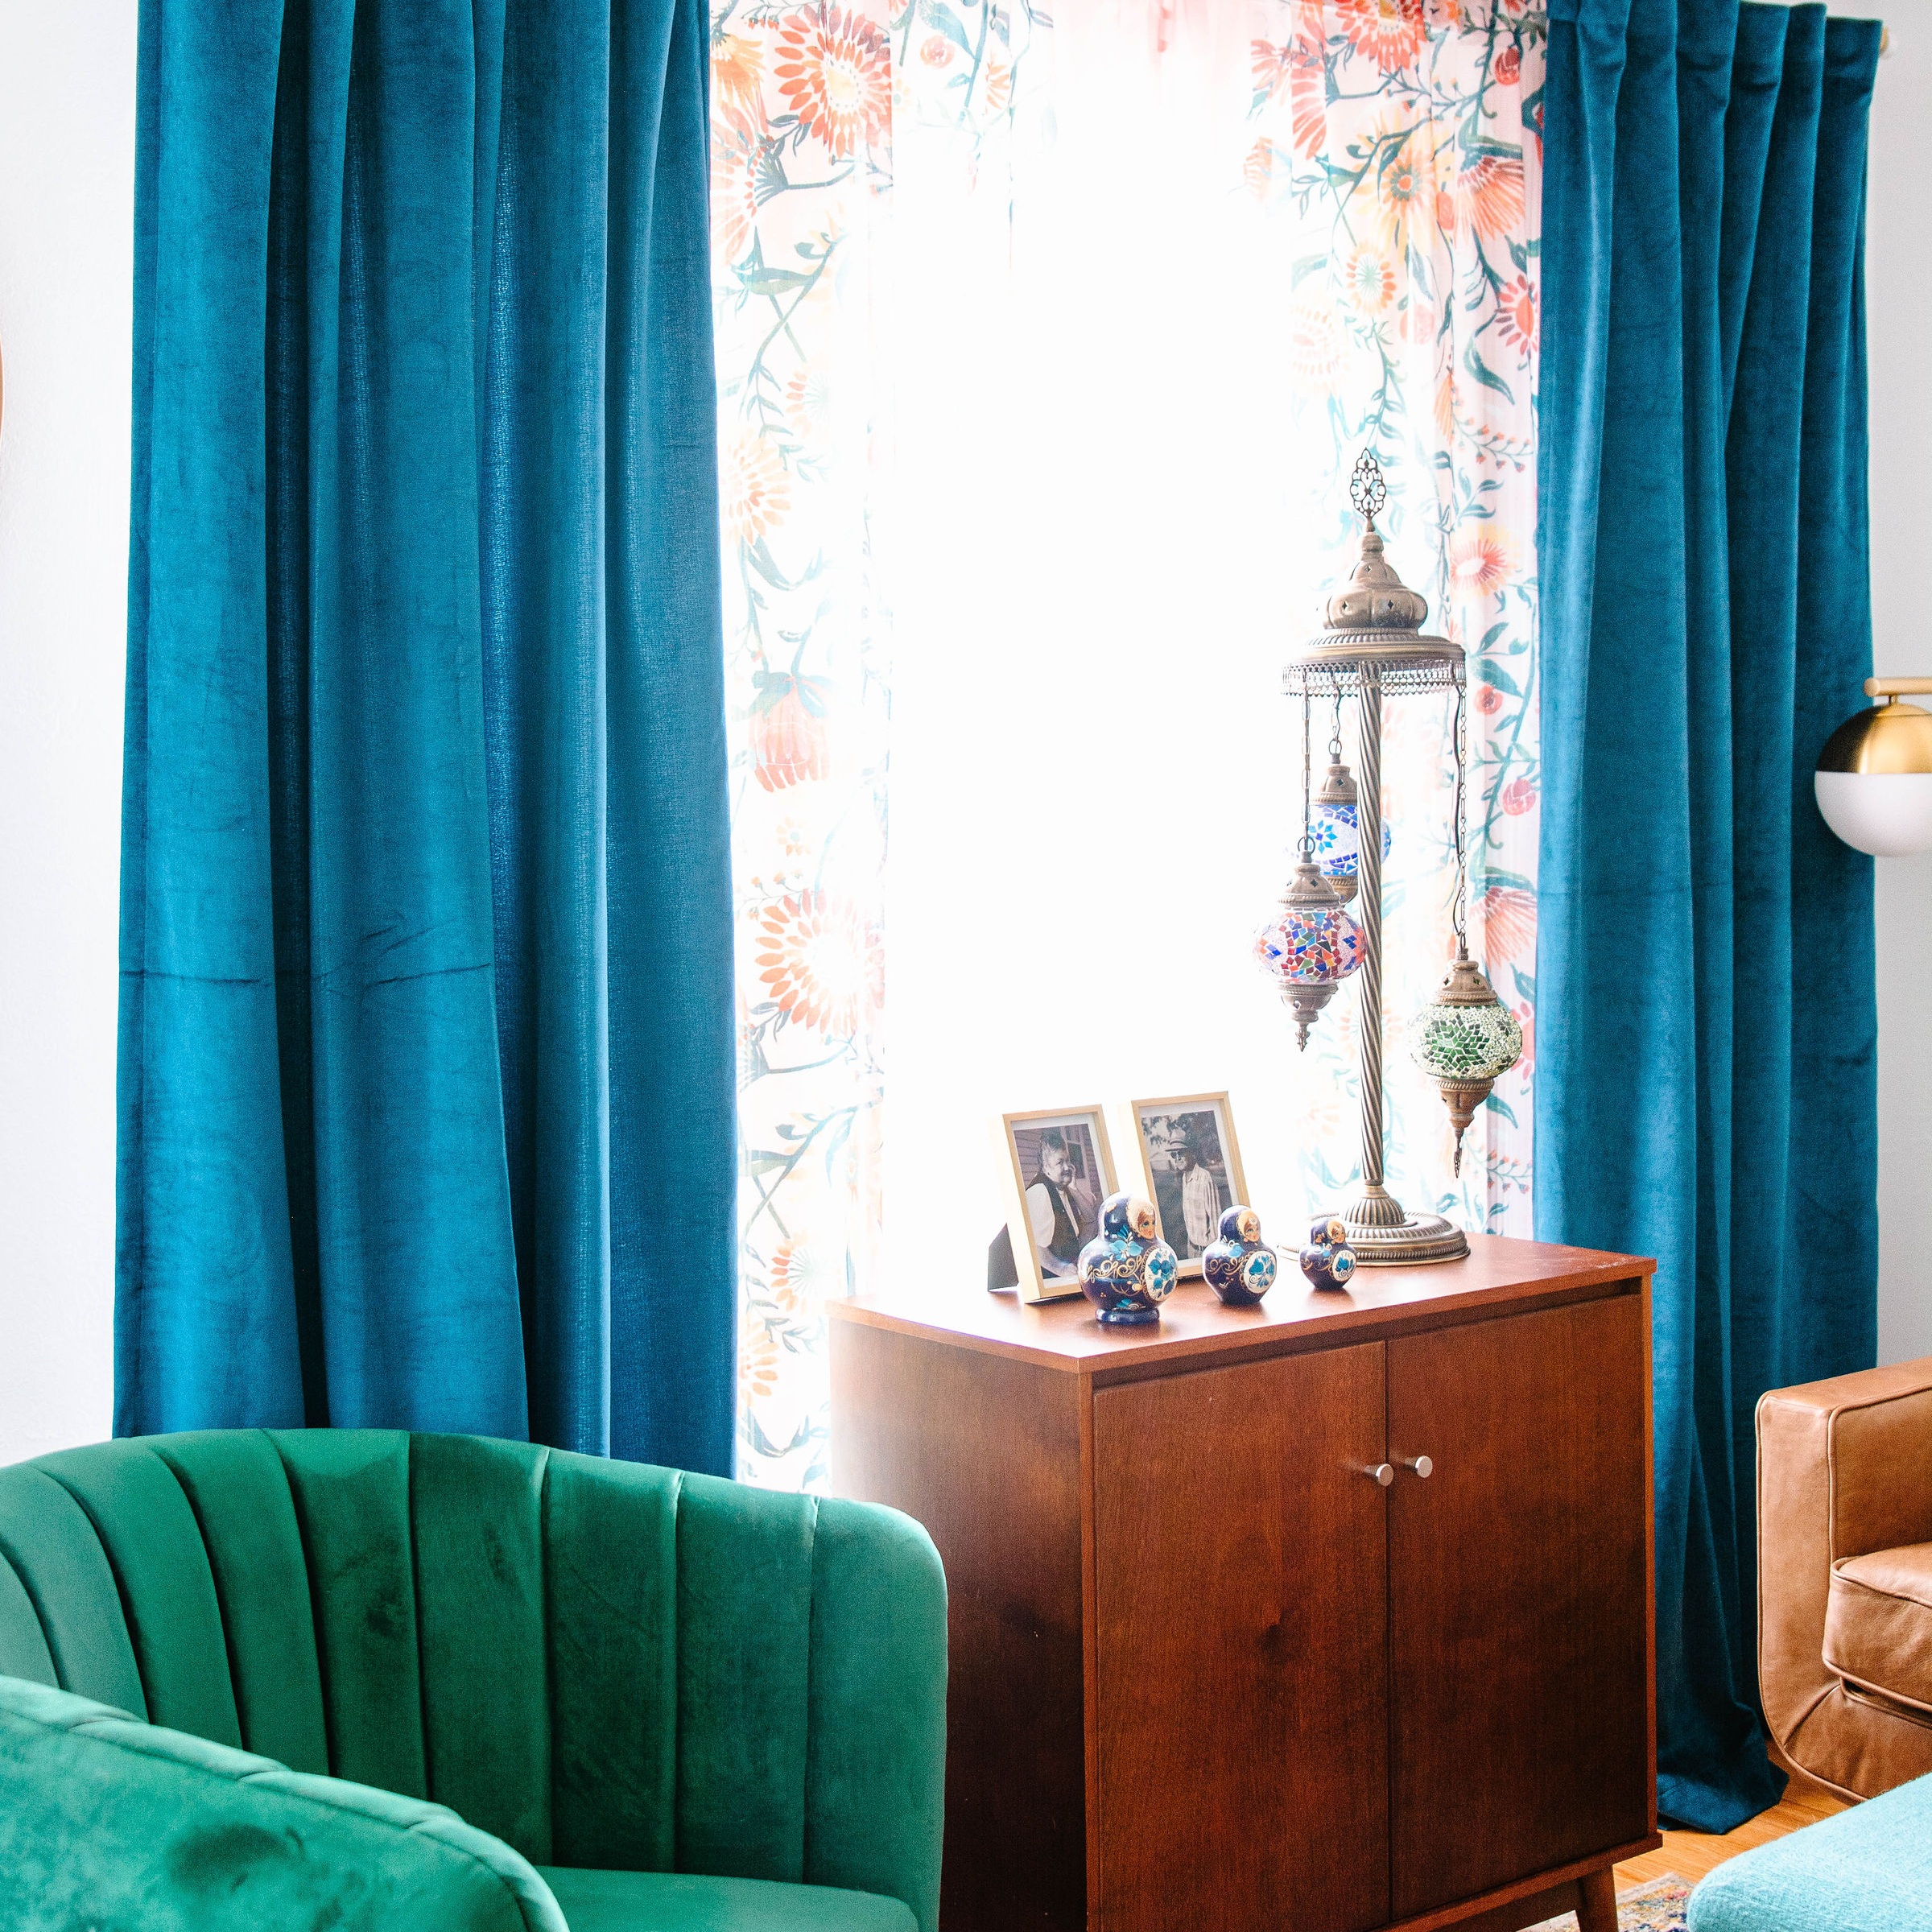 I paired Target's Sheer Opalhouse curtains with this blue velvet curtain in my living room. It makes for a dramatic effect. (Photo by: m.mcgdesigns)